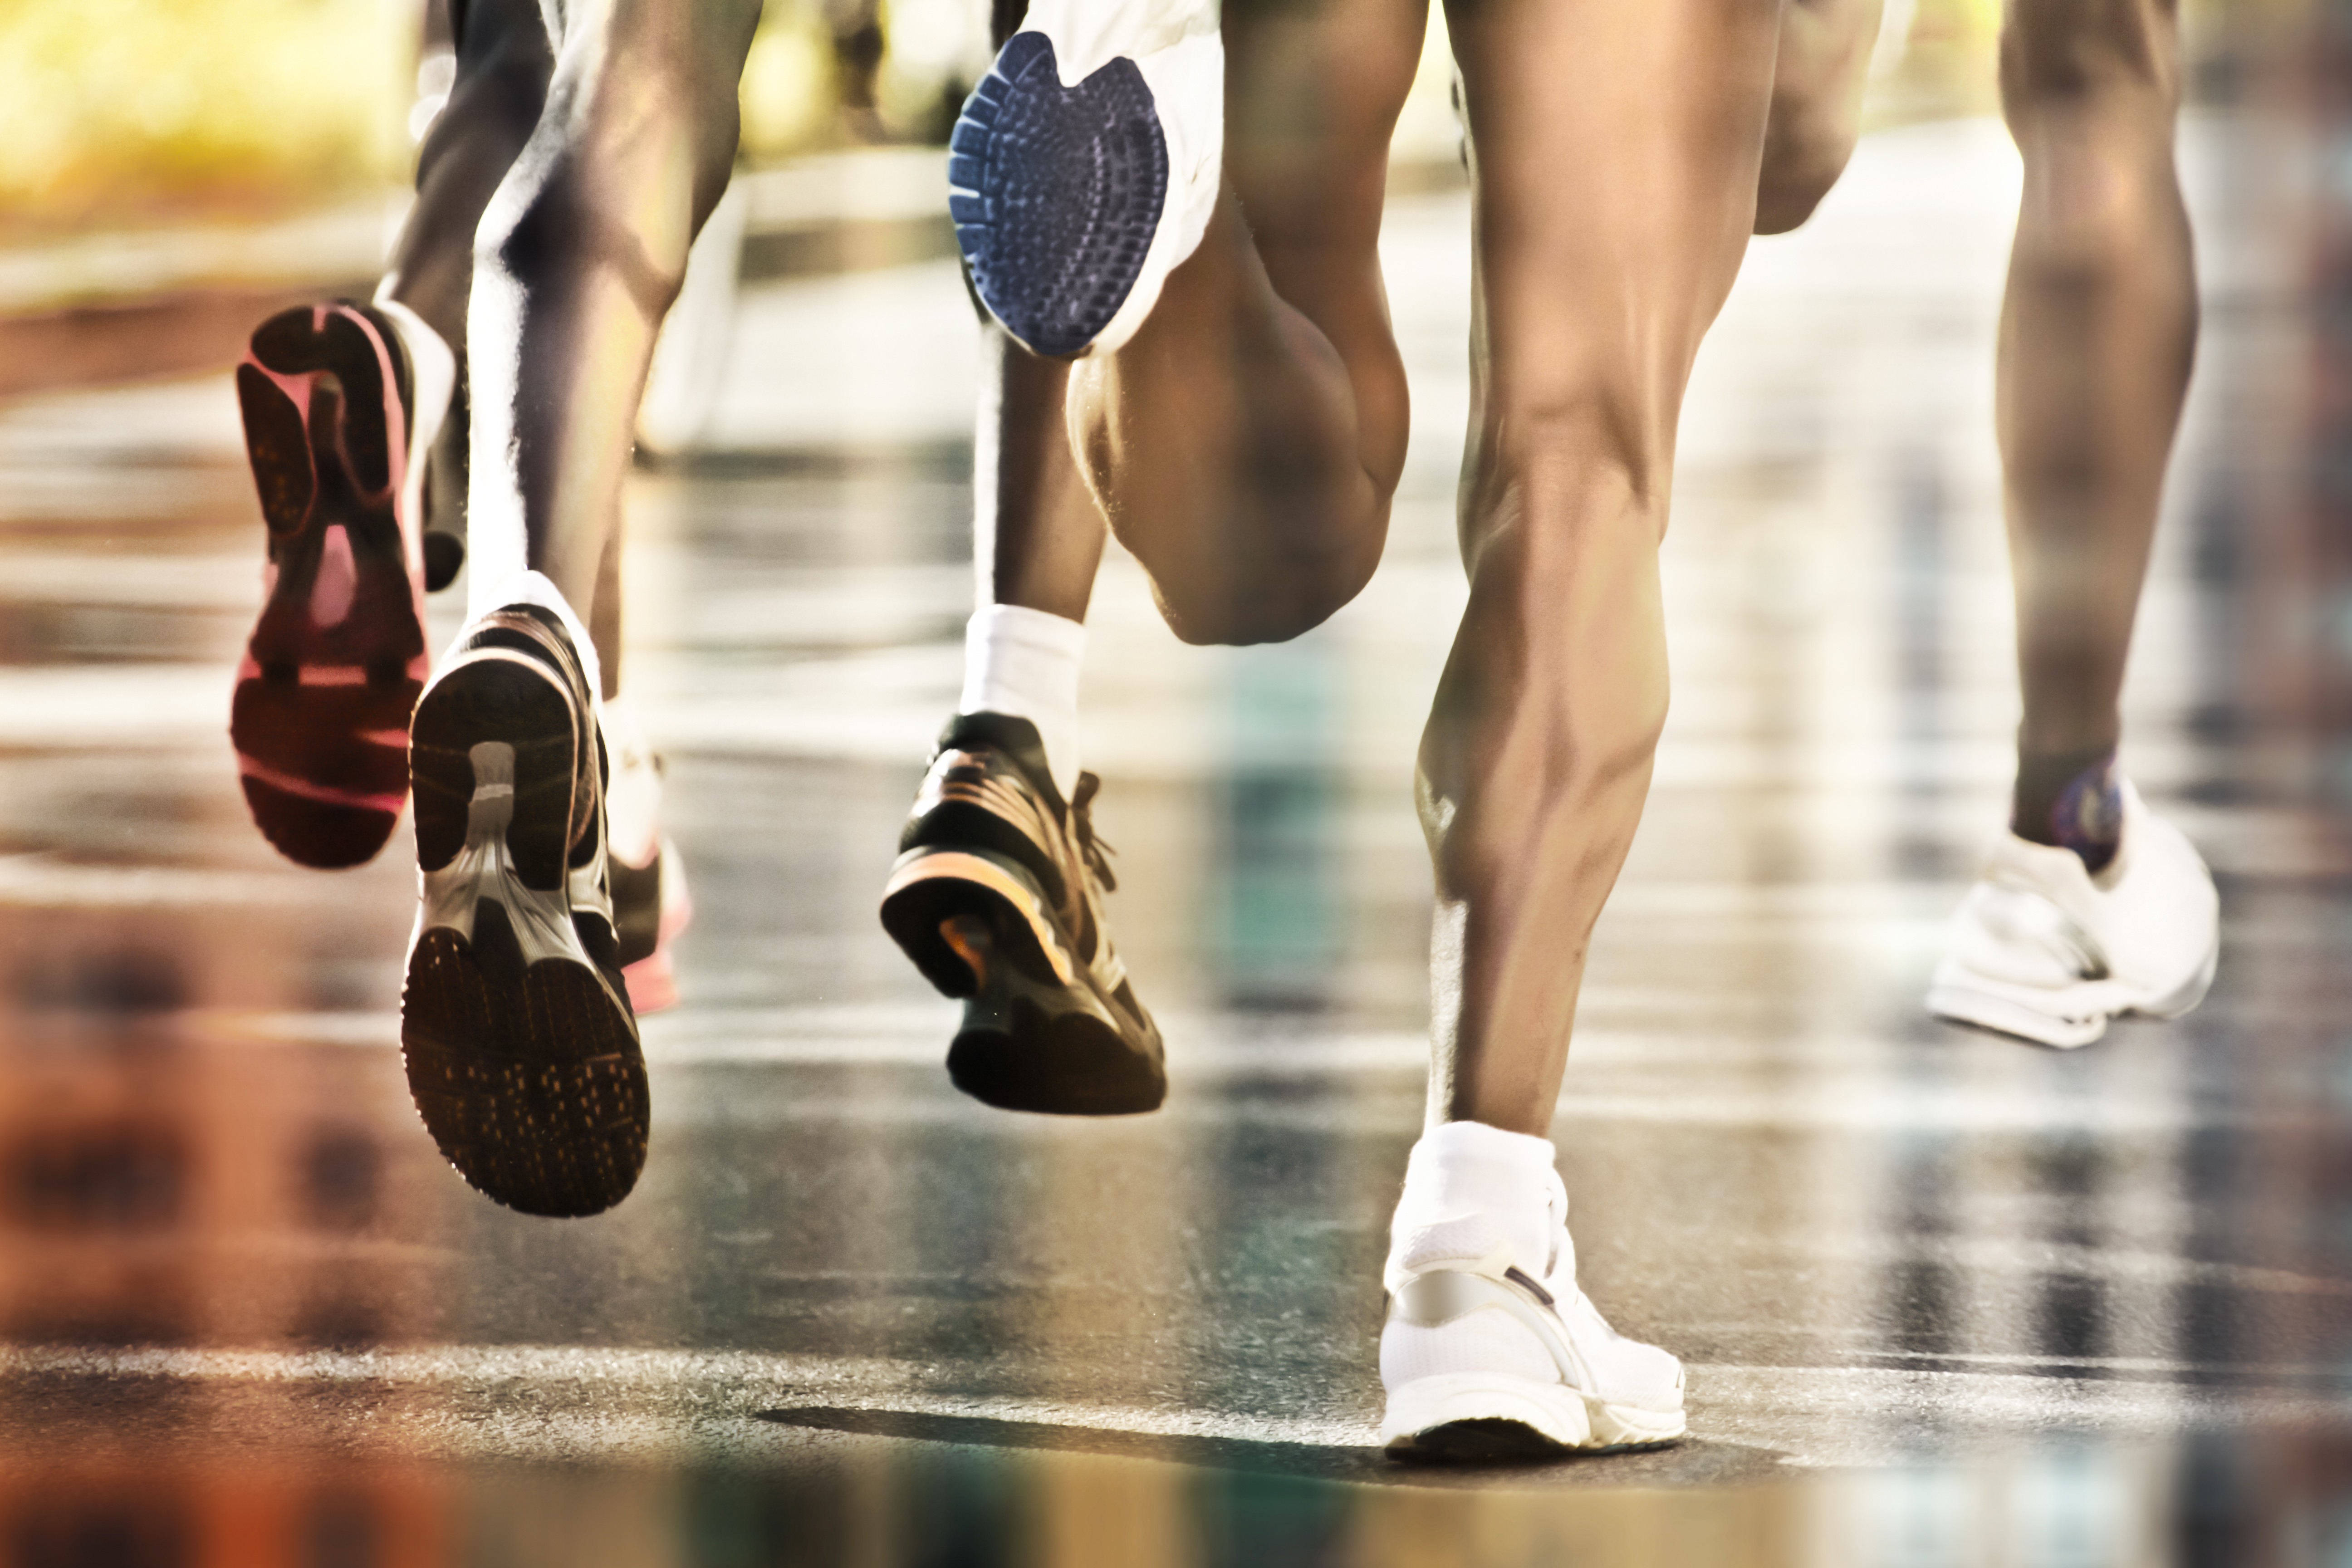 Close up on runners feet during race.